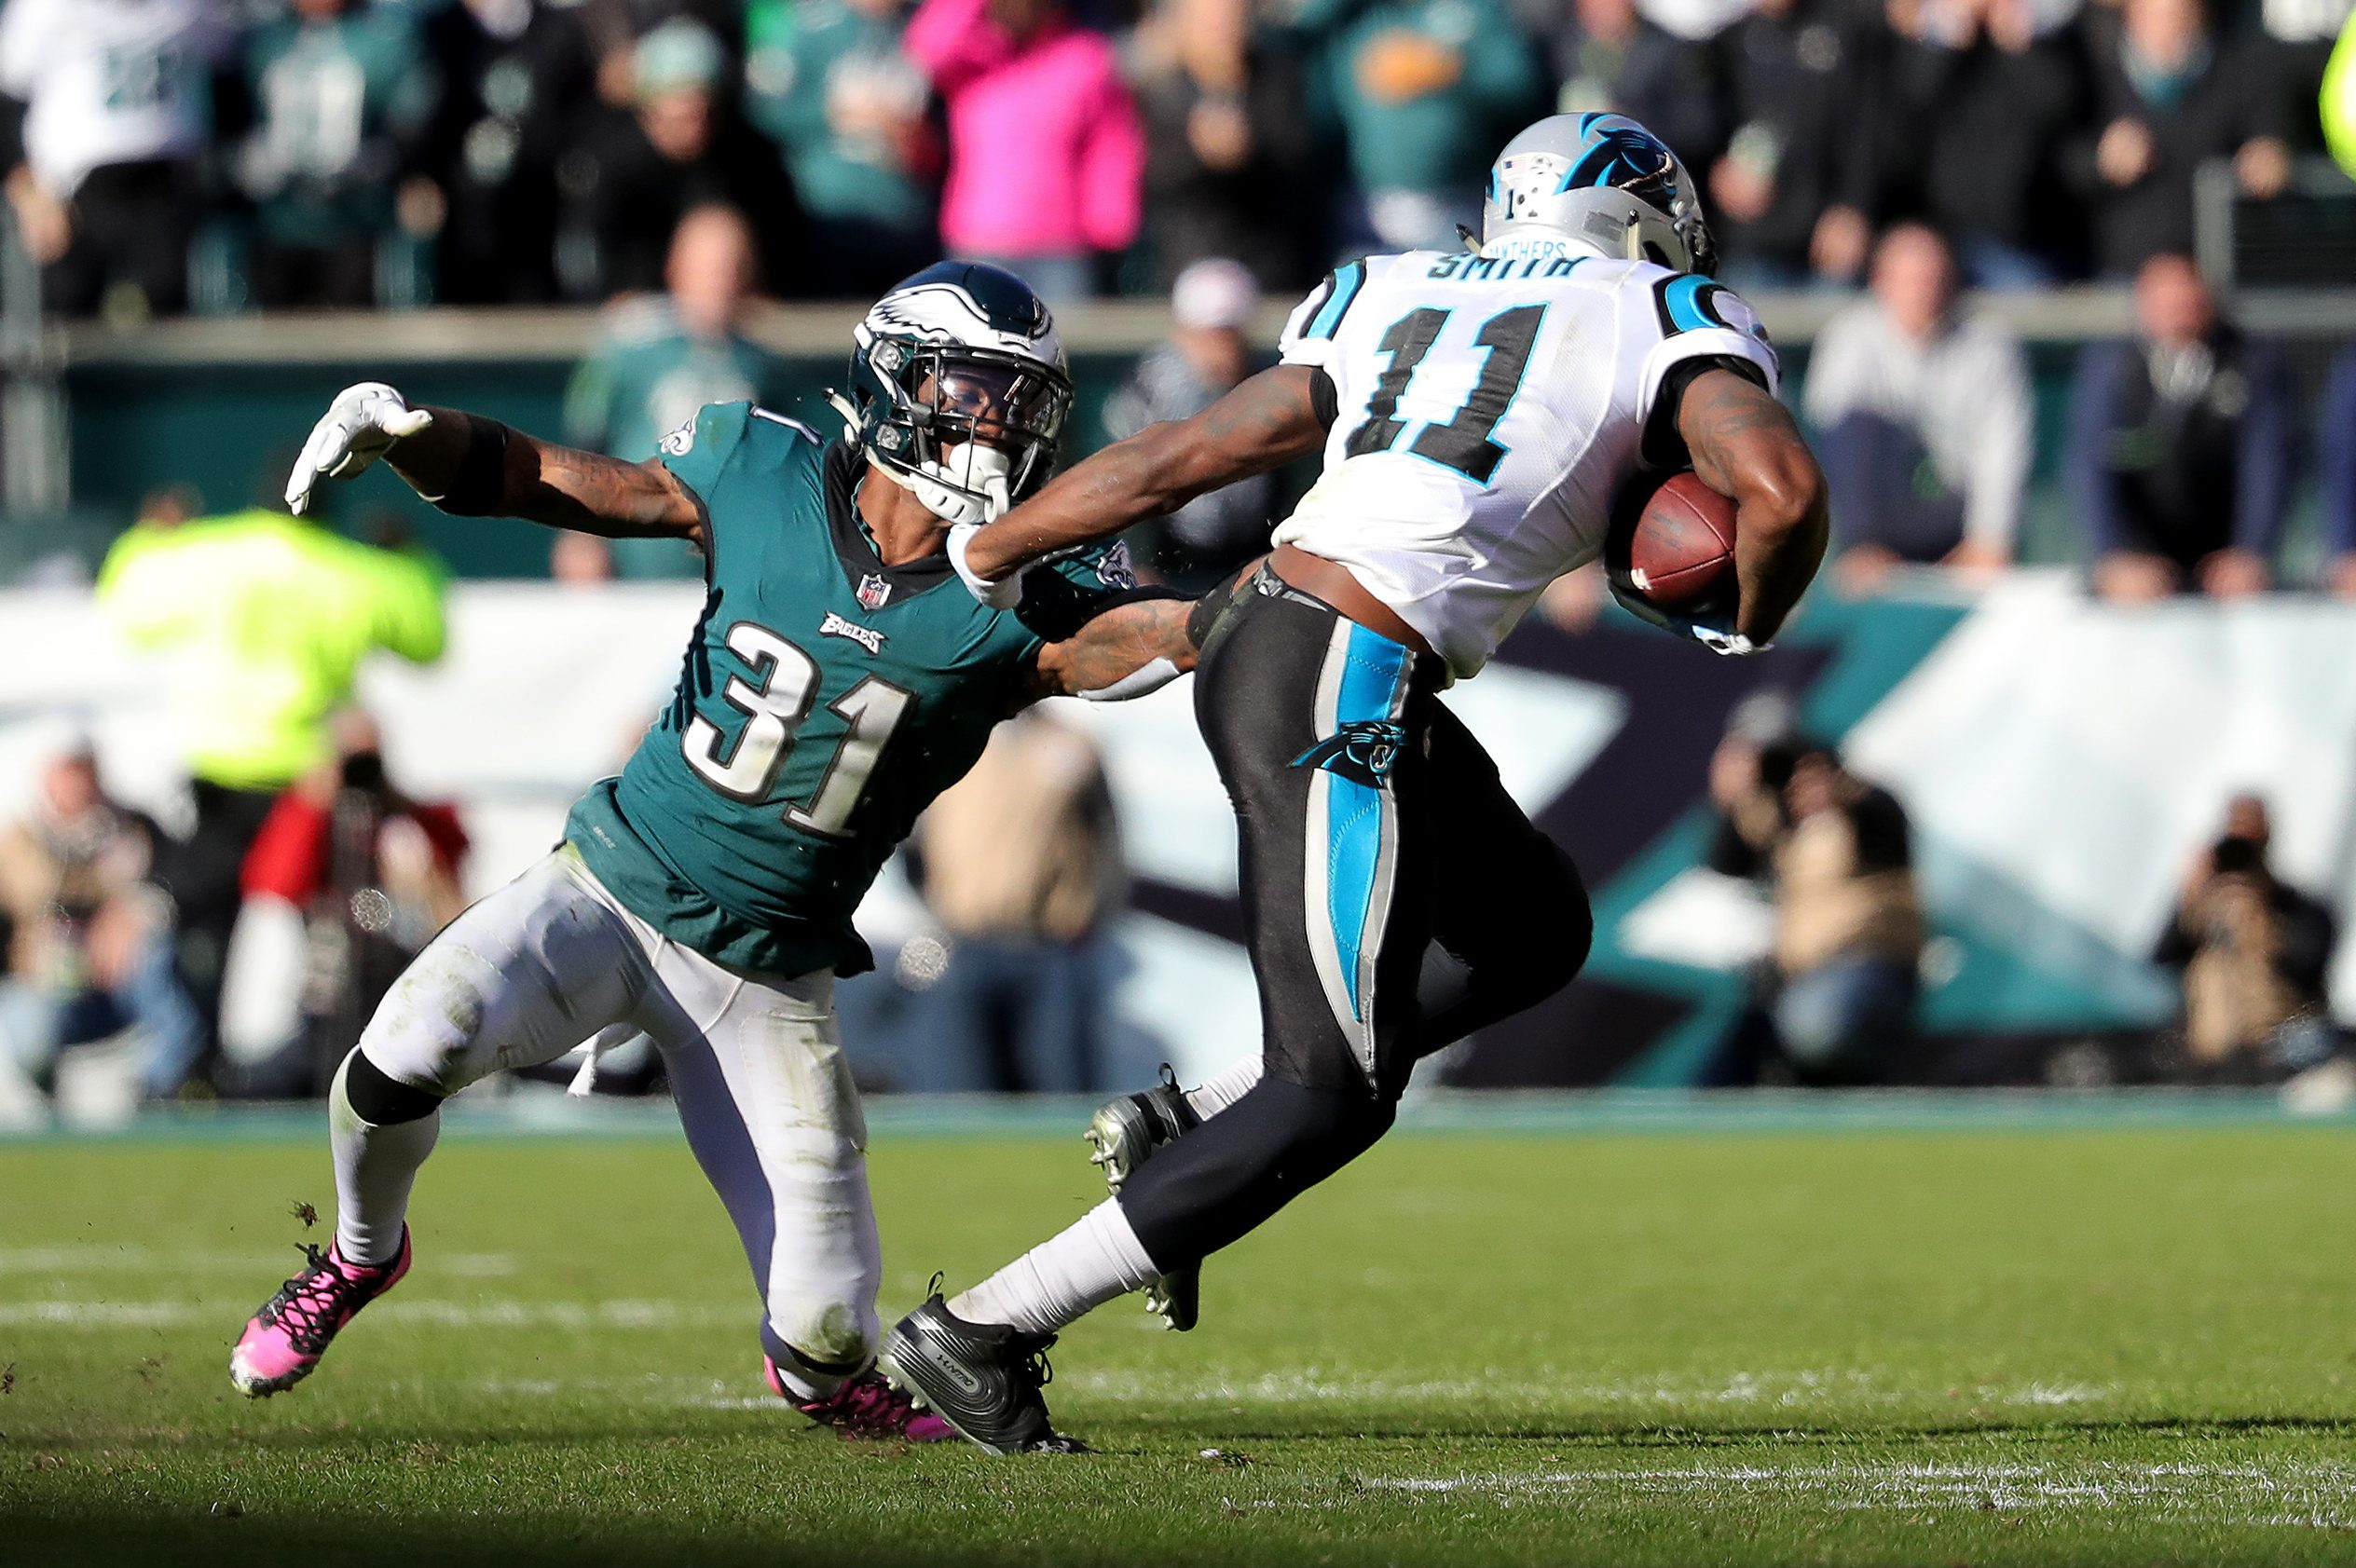 Jalen Mills (left) cannot take down the Panthers´ Torrey Smith on Carolina´s game-winning drive in the fourth quarter.